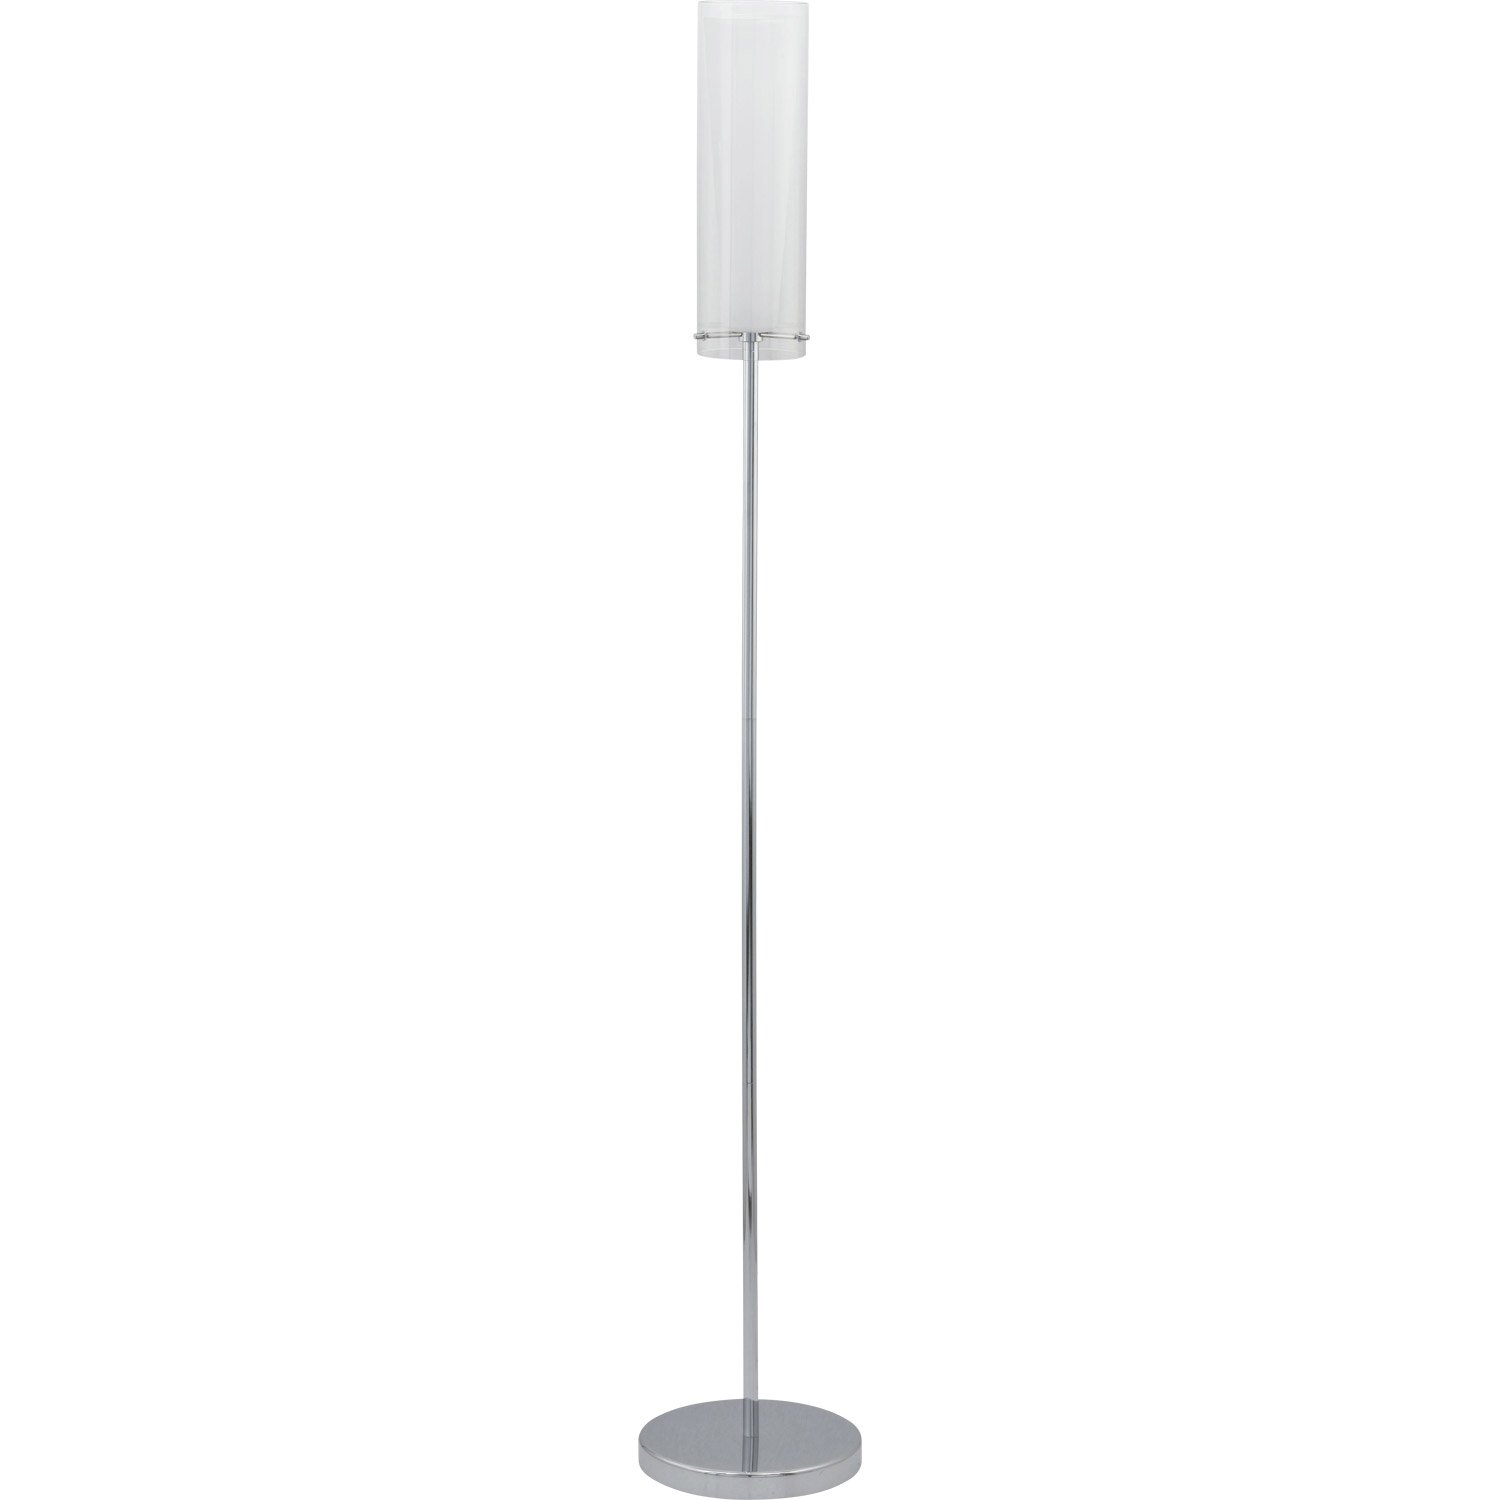 lampadaire pinto eglo 147 cm blanc 60 w leroy merlin. Black Bedroom Furniture Sets. Home Design Ideas